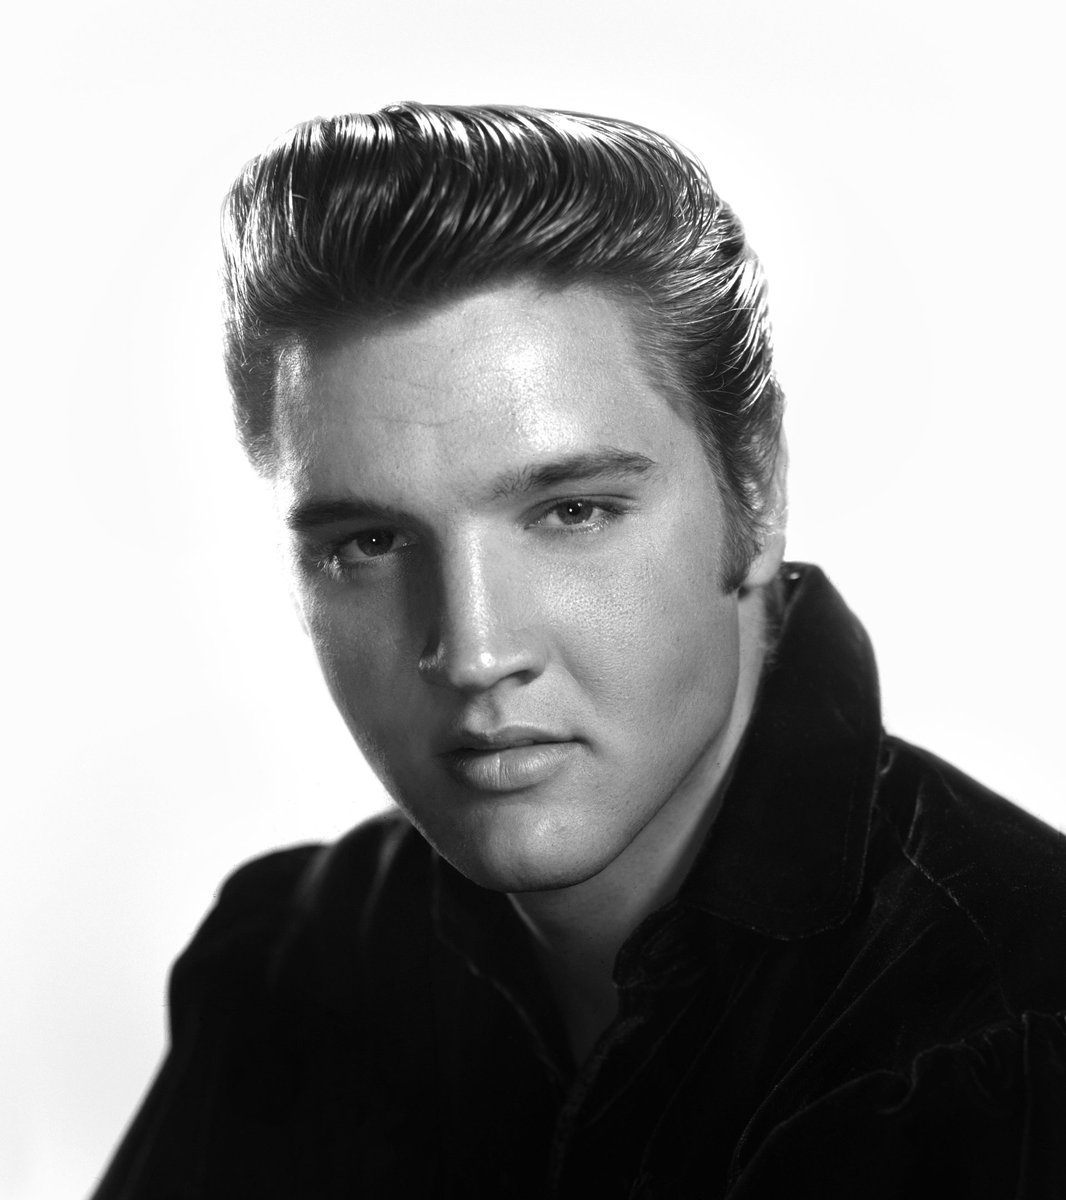 Elvis Presley News on Twitter: